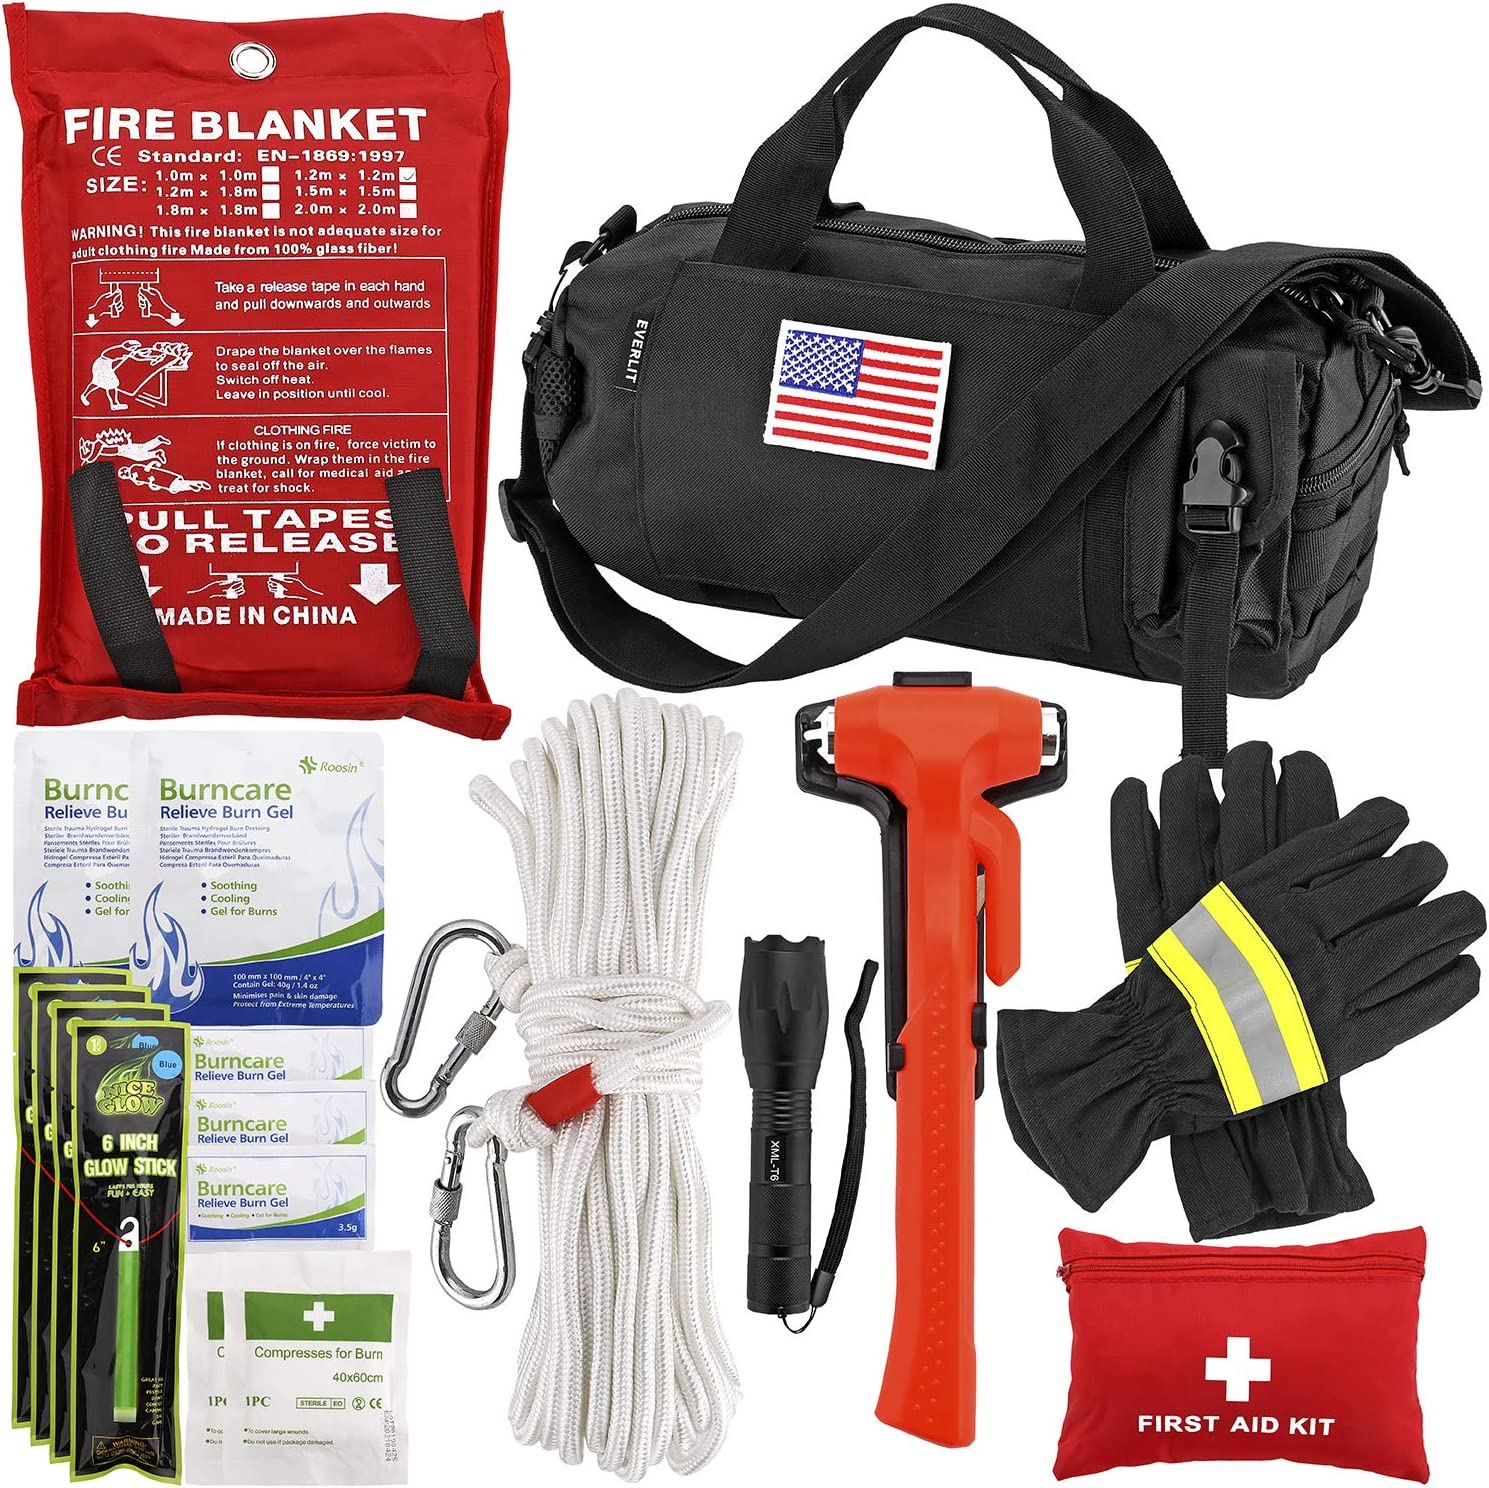 EVERLIT Survival Emergency Fire Safety Kit with Fire Blanket, Heat Resistant Gloves, Escape Rope, Glass Hammer, Glow Sticks, Flashlight, First Aid Supplies with Burn Injury Care Treatment and More: Sports & Outdoors